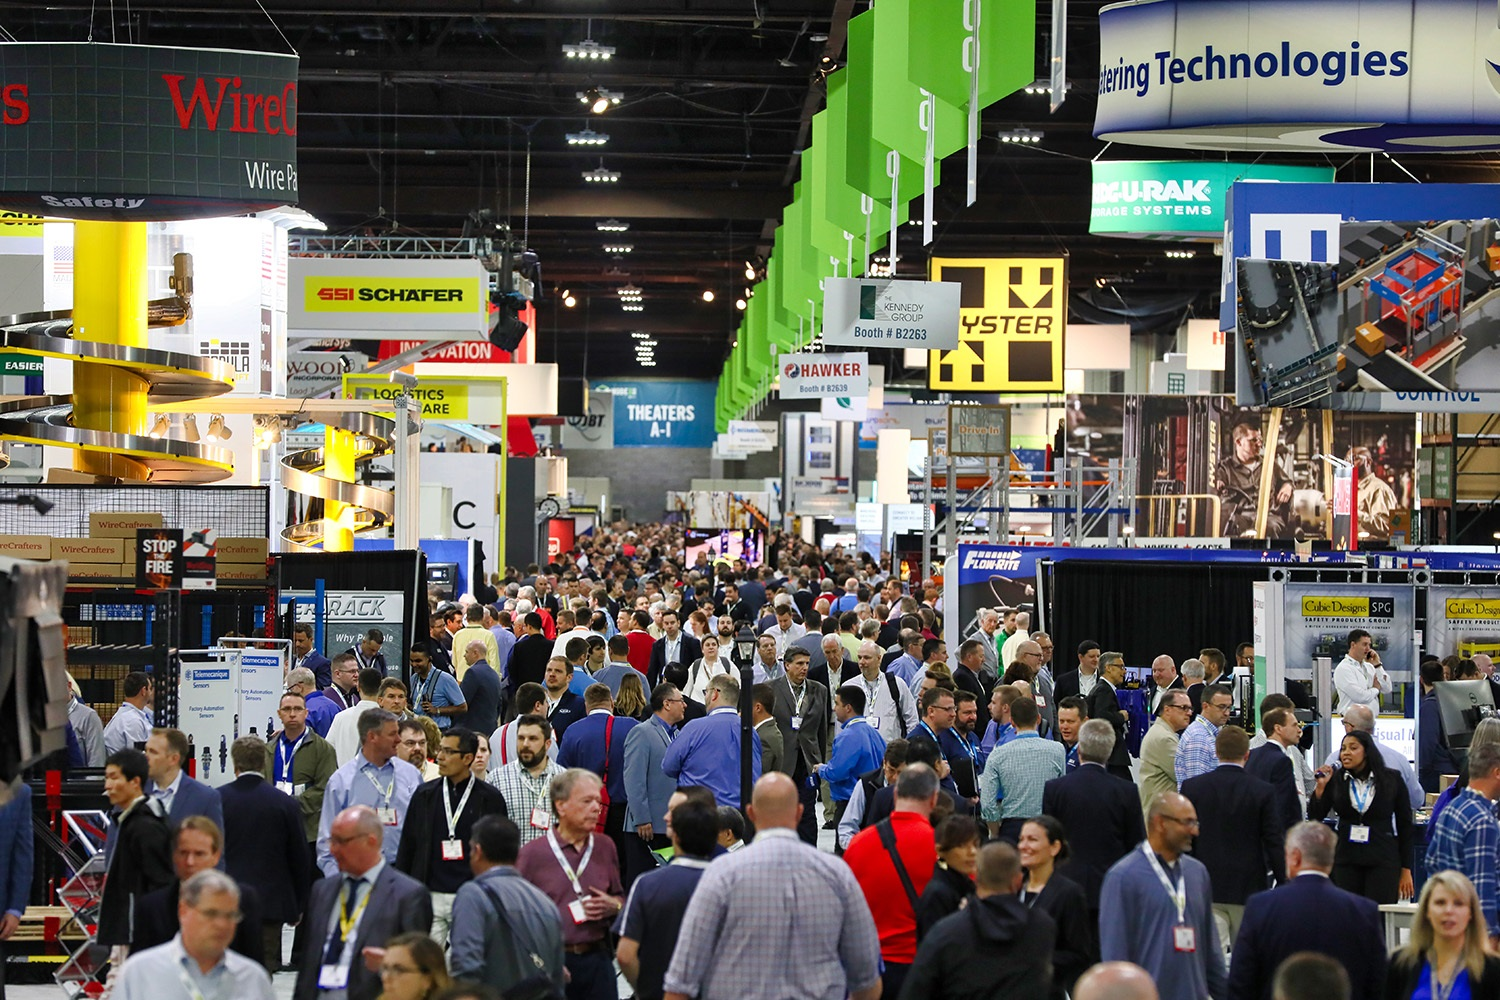 Exhibition Booth Cost : The costs of exhibiting at a trade show a budget breakdown